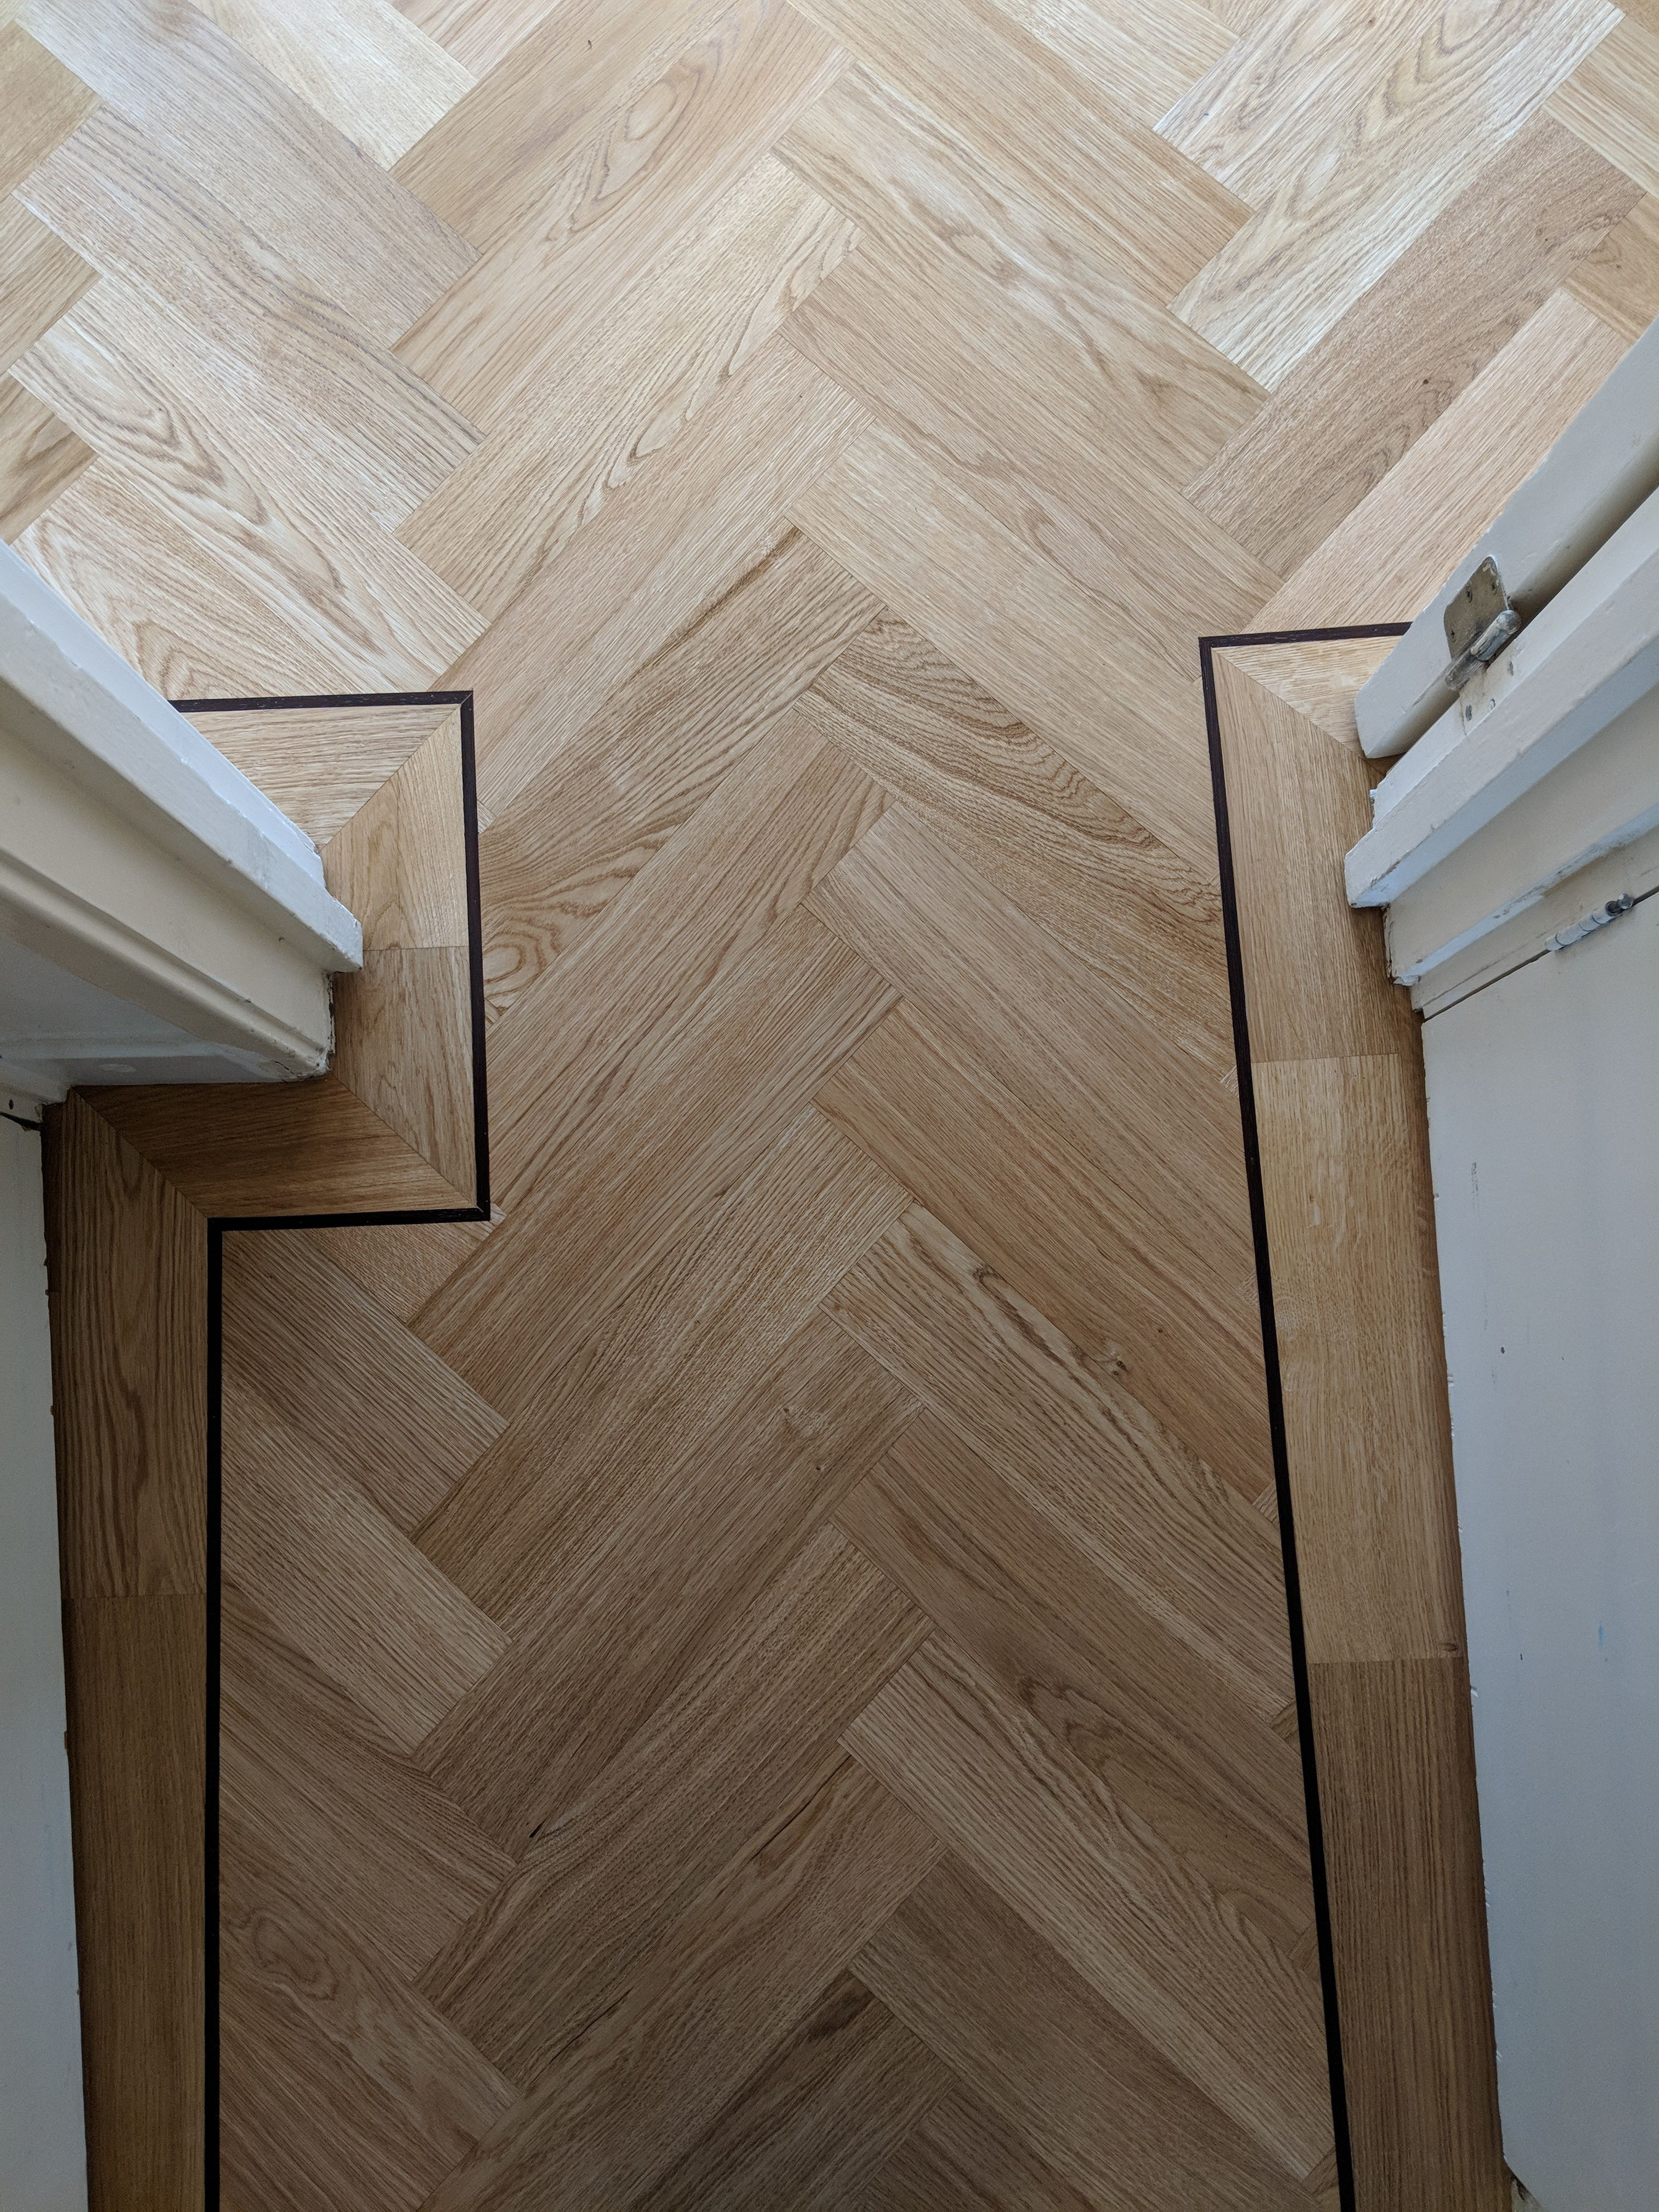 Wenge Oak Solid Wood Flooring oak parquet wood flooring with a single border and a single